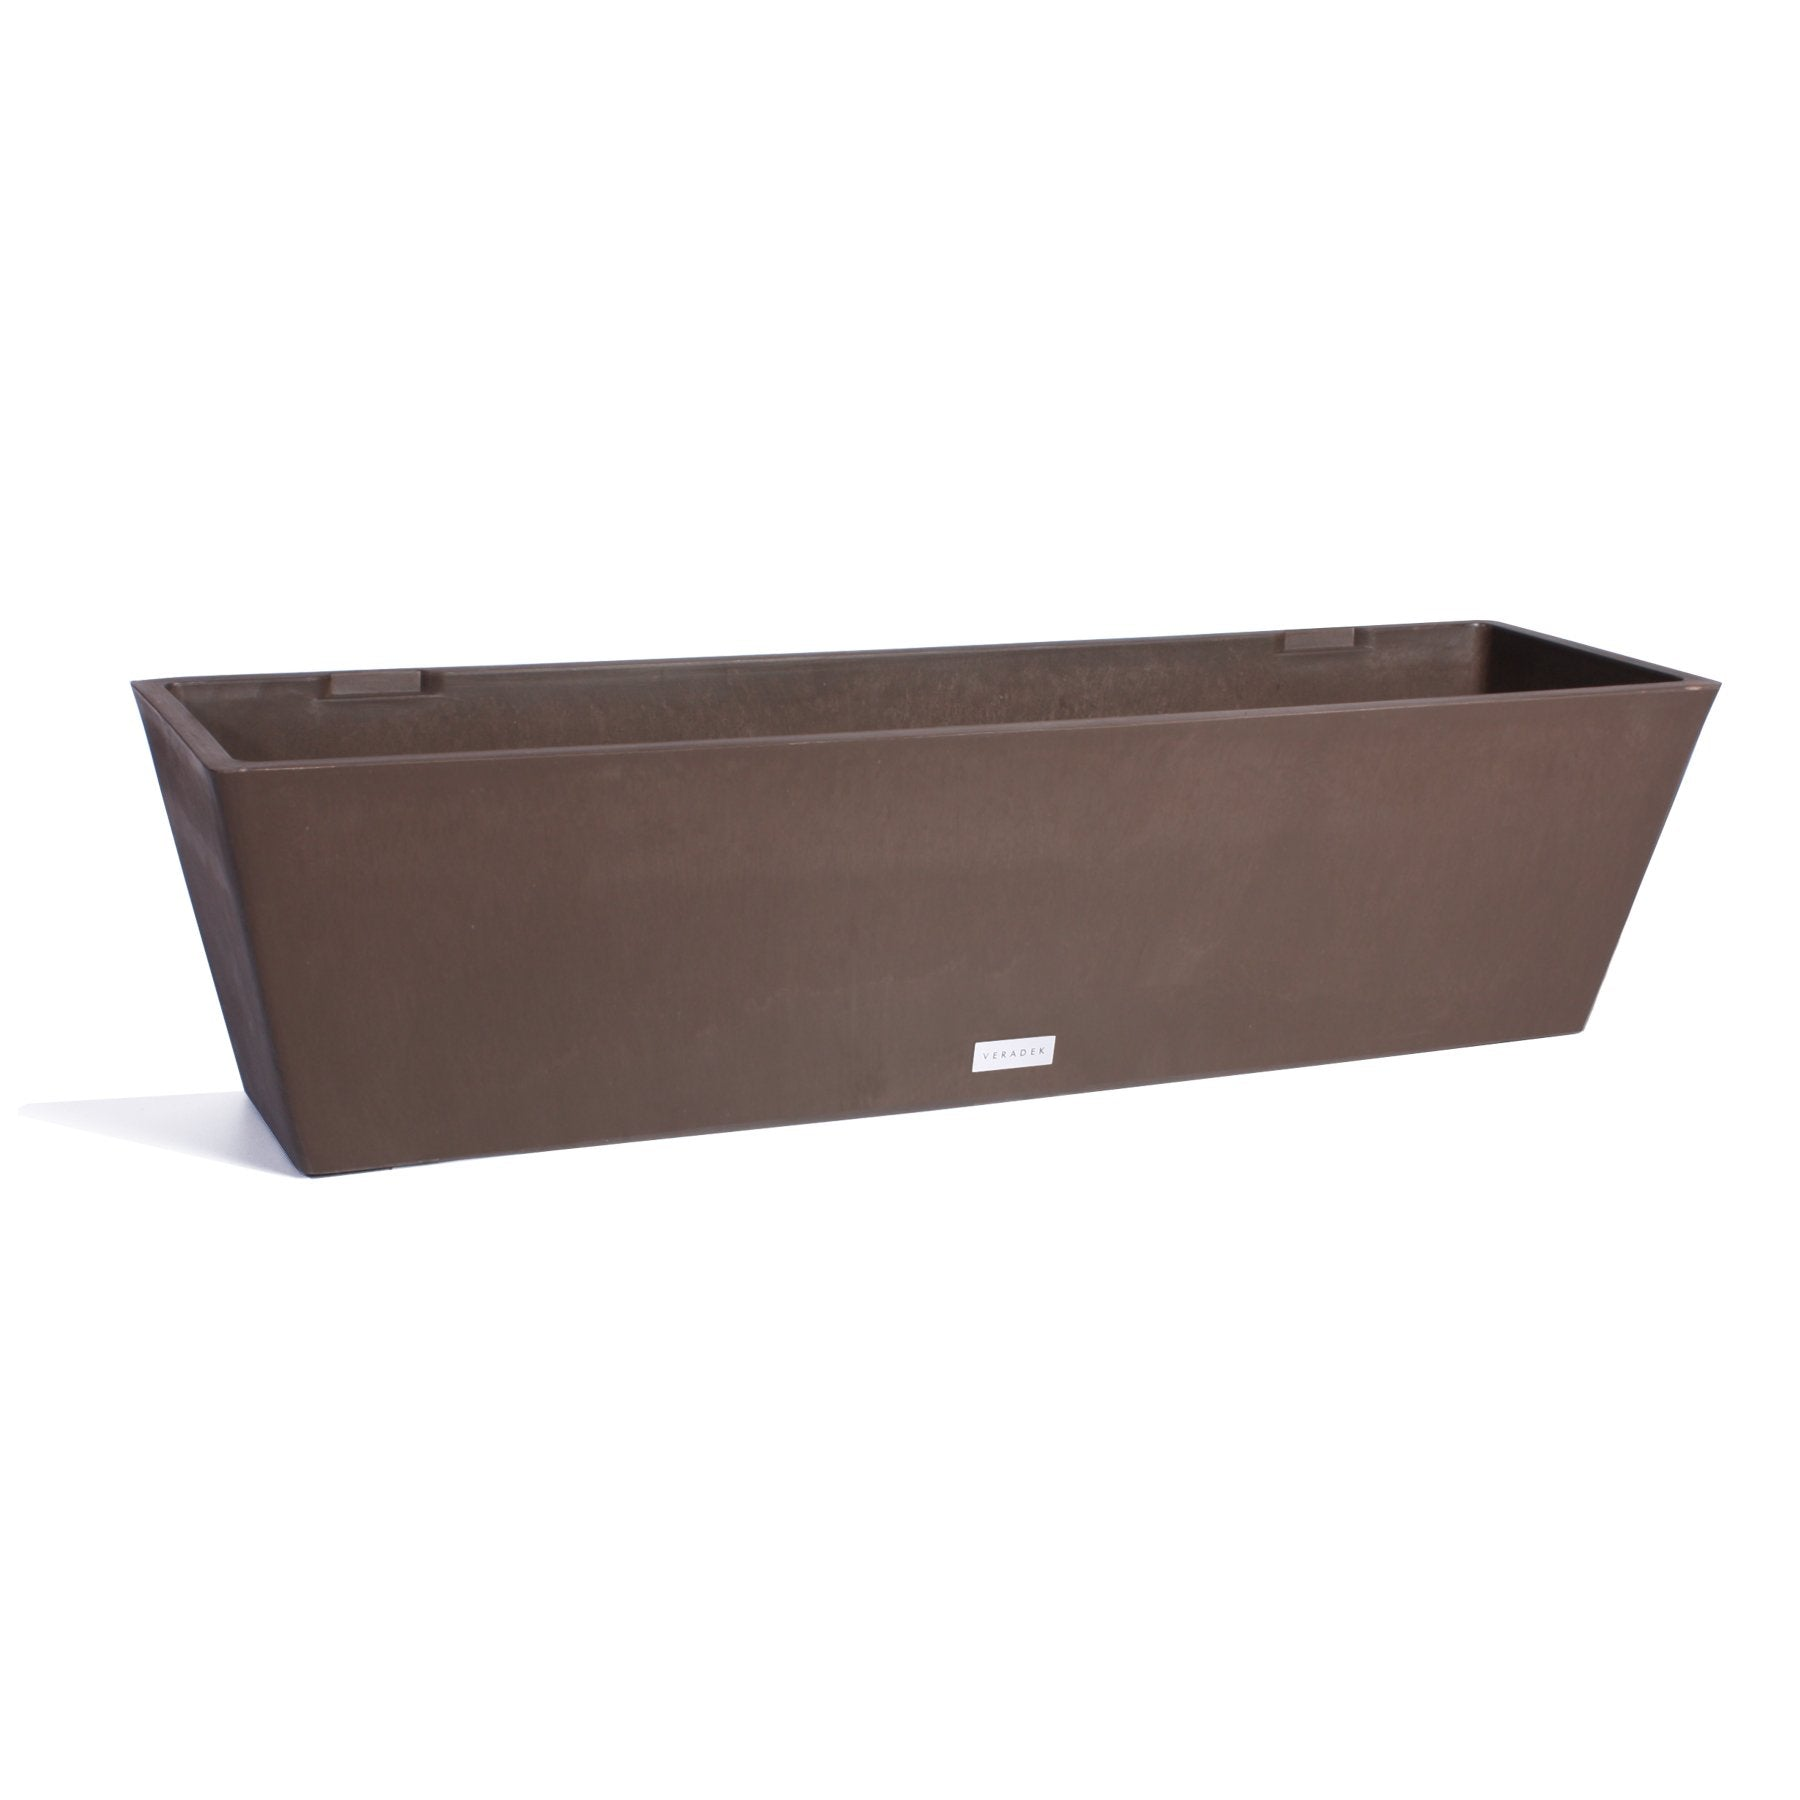 Veradek Window Box Plastic Planter, Modern Planter, Light weight planter, weather-resistant, rectangle planter, outdoor and indoor